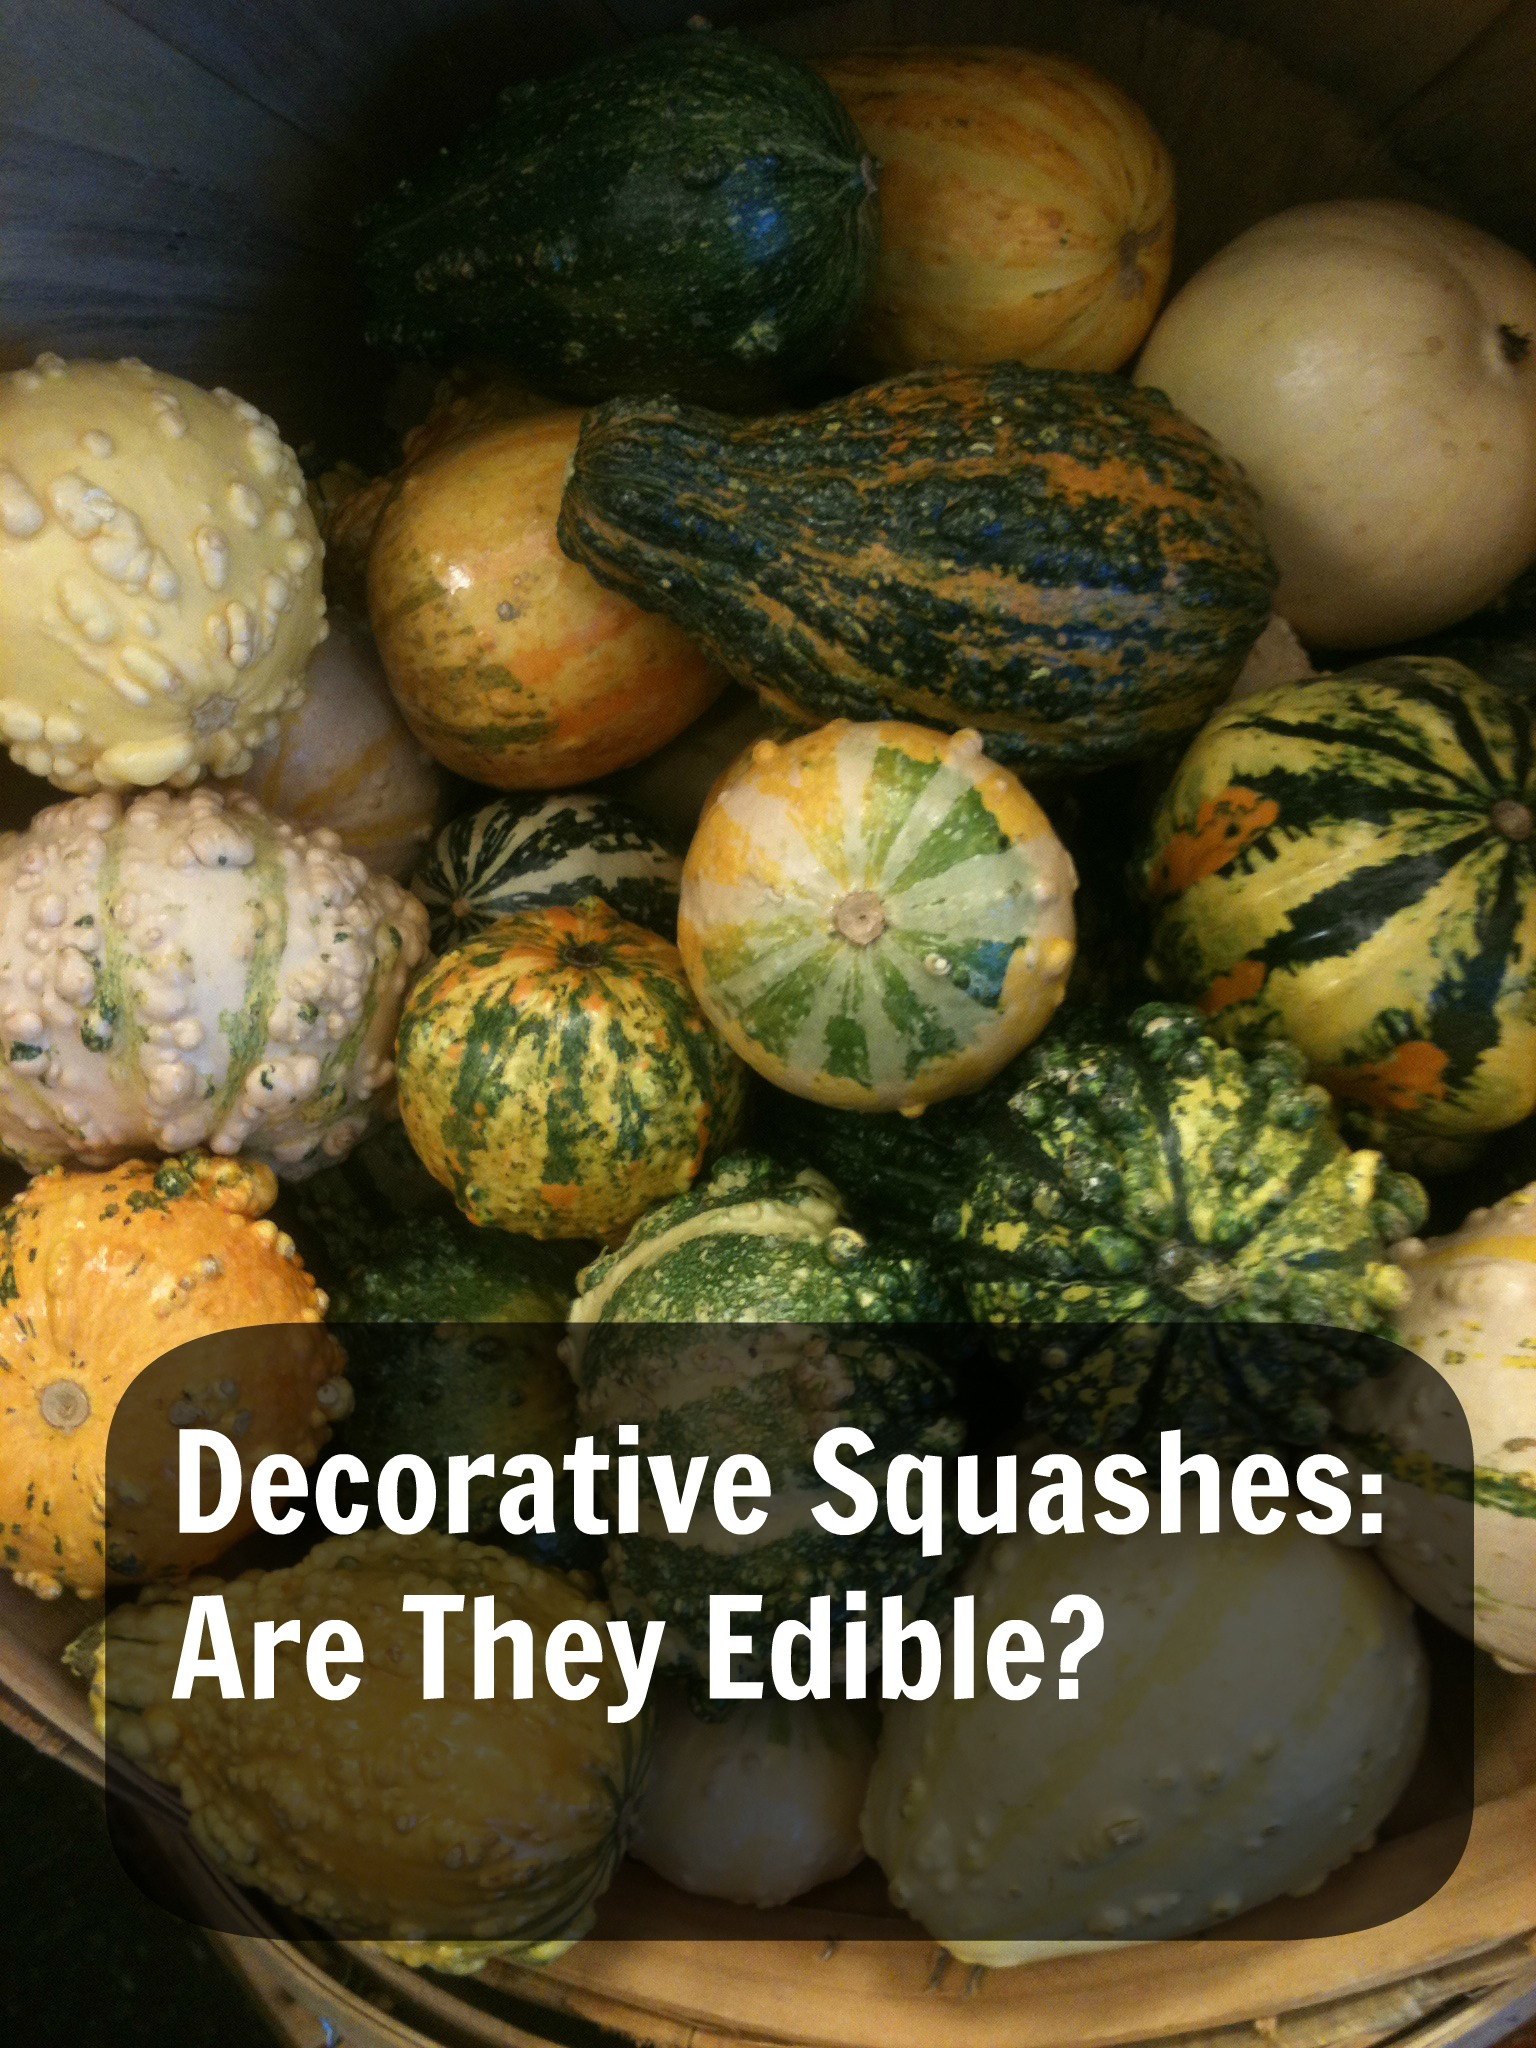 Decorative Squashes: Are They Edible?